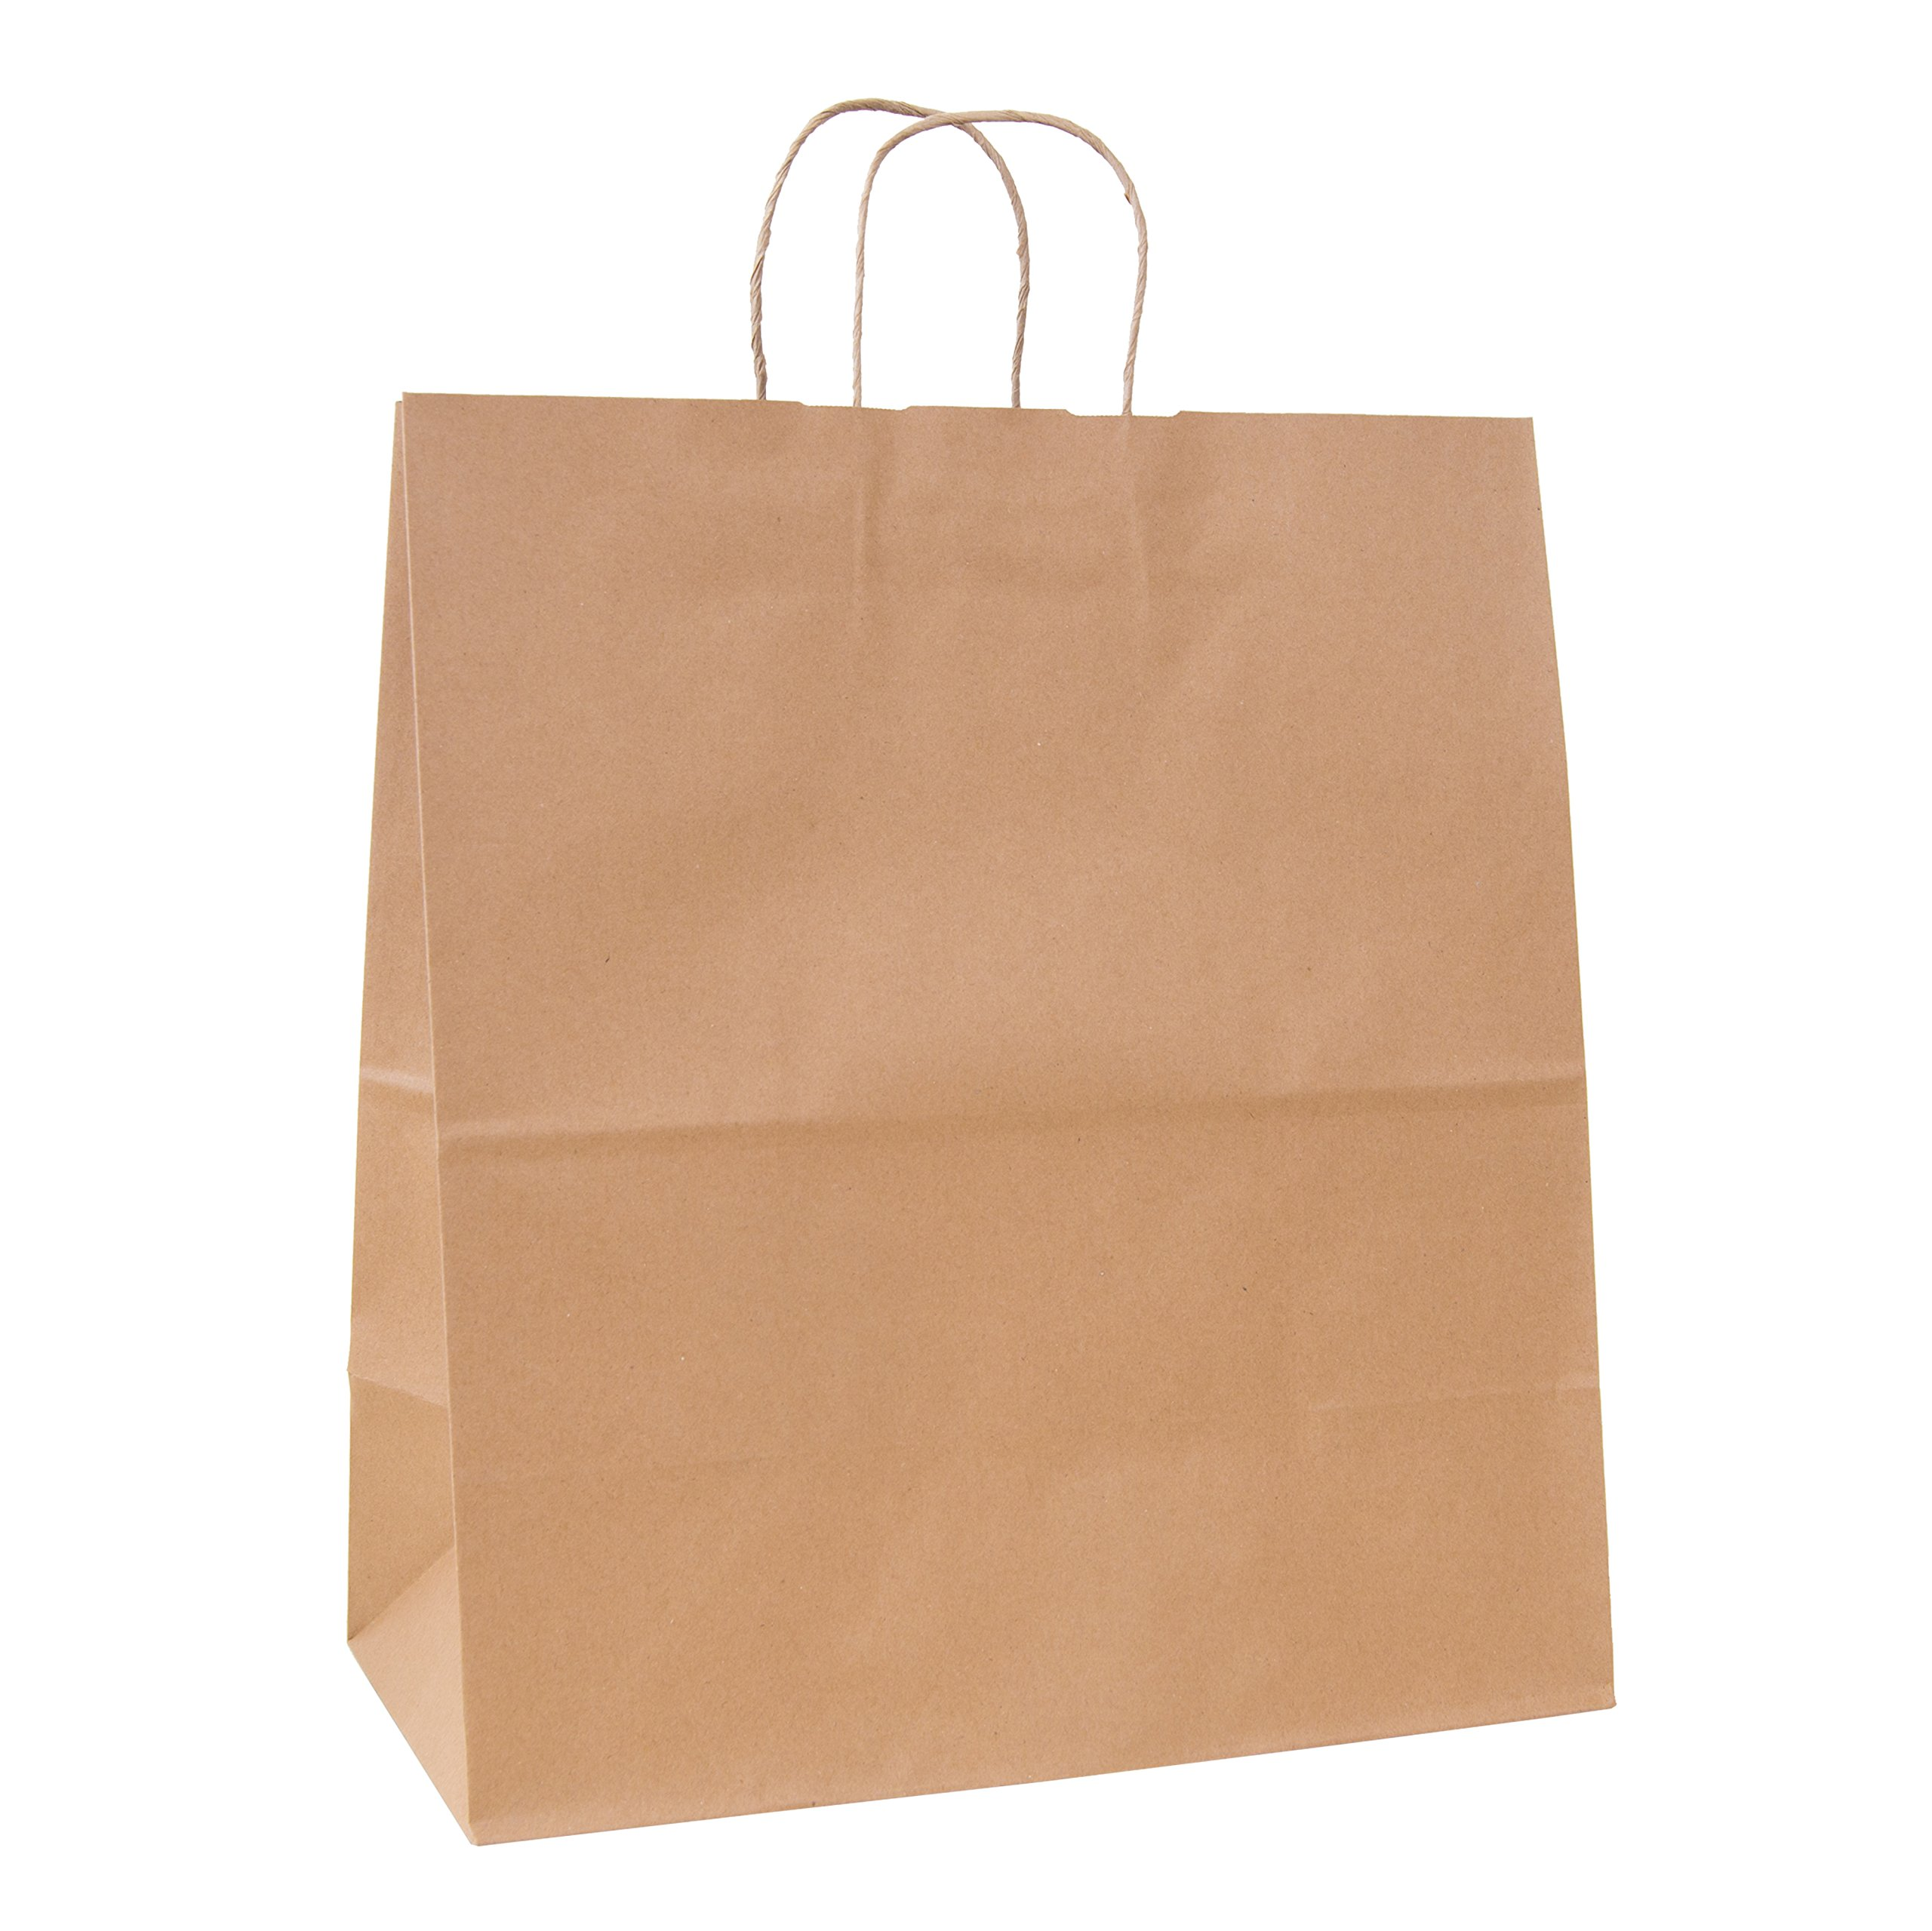 Incredible Packaging - 18'' x 7'' x 18'' Jumbo Kraft Paper Bags with Handles for Shopping, Retail and Merchandise. Strong and Reusable - 80 Paper Thickness- 100% Recycled (200, Brown) by Incredible Packaging (Image #2)